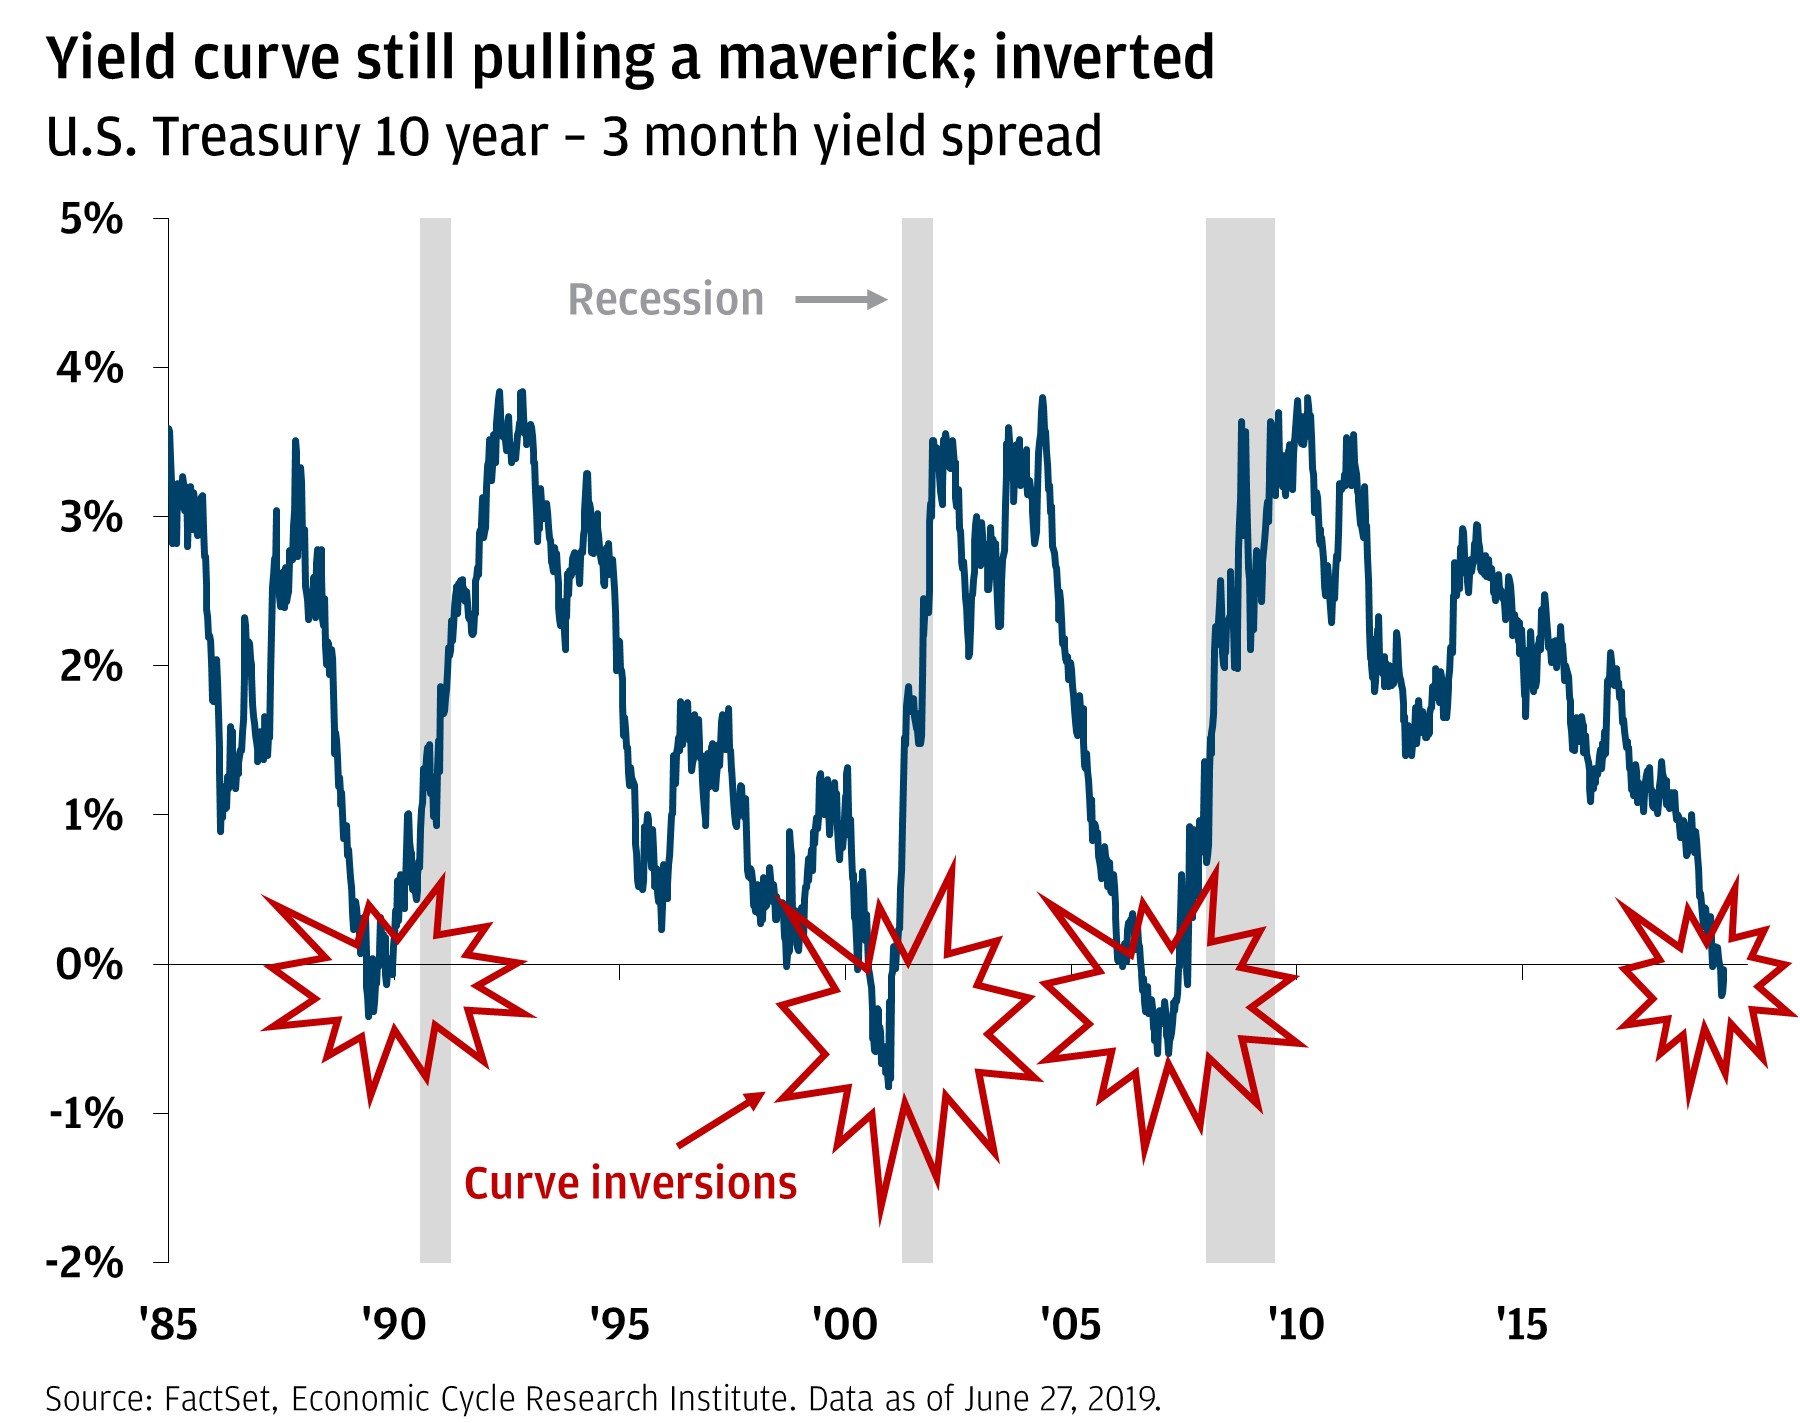 Yield curve still pulling a maverick; inverted Line chart shows spread between 10-year and 3-month U.S. Treasury yields from 1985 through 2019. The chart highlights that, historically, when this spread falls below 0% (an inversion), a recession follows a few months afterward.